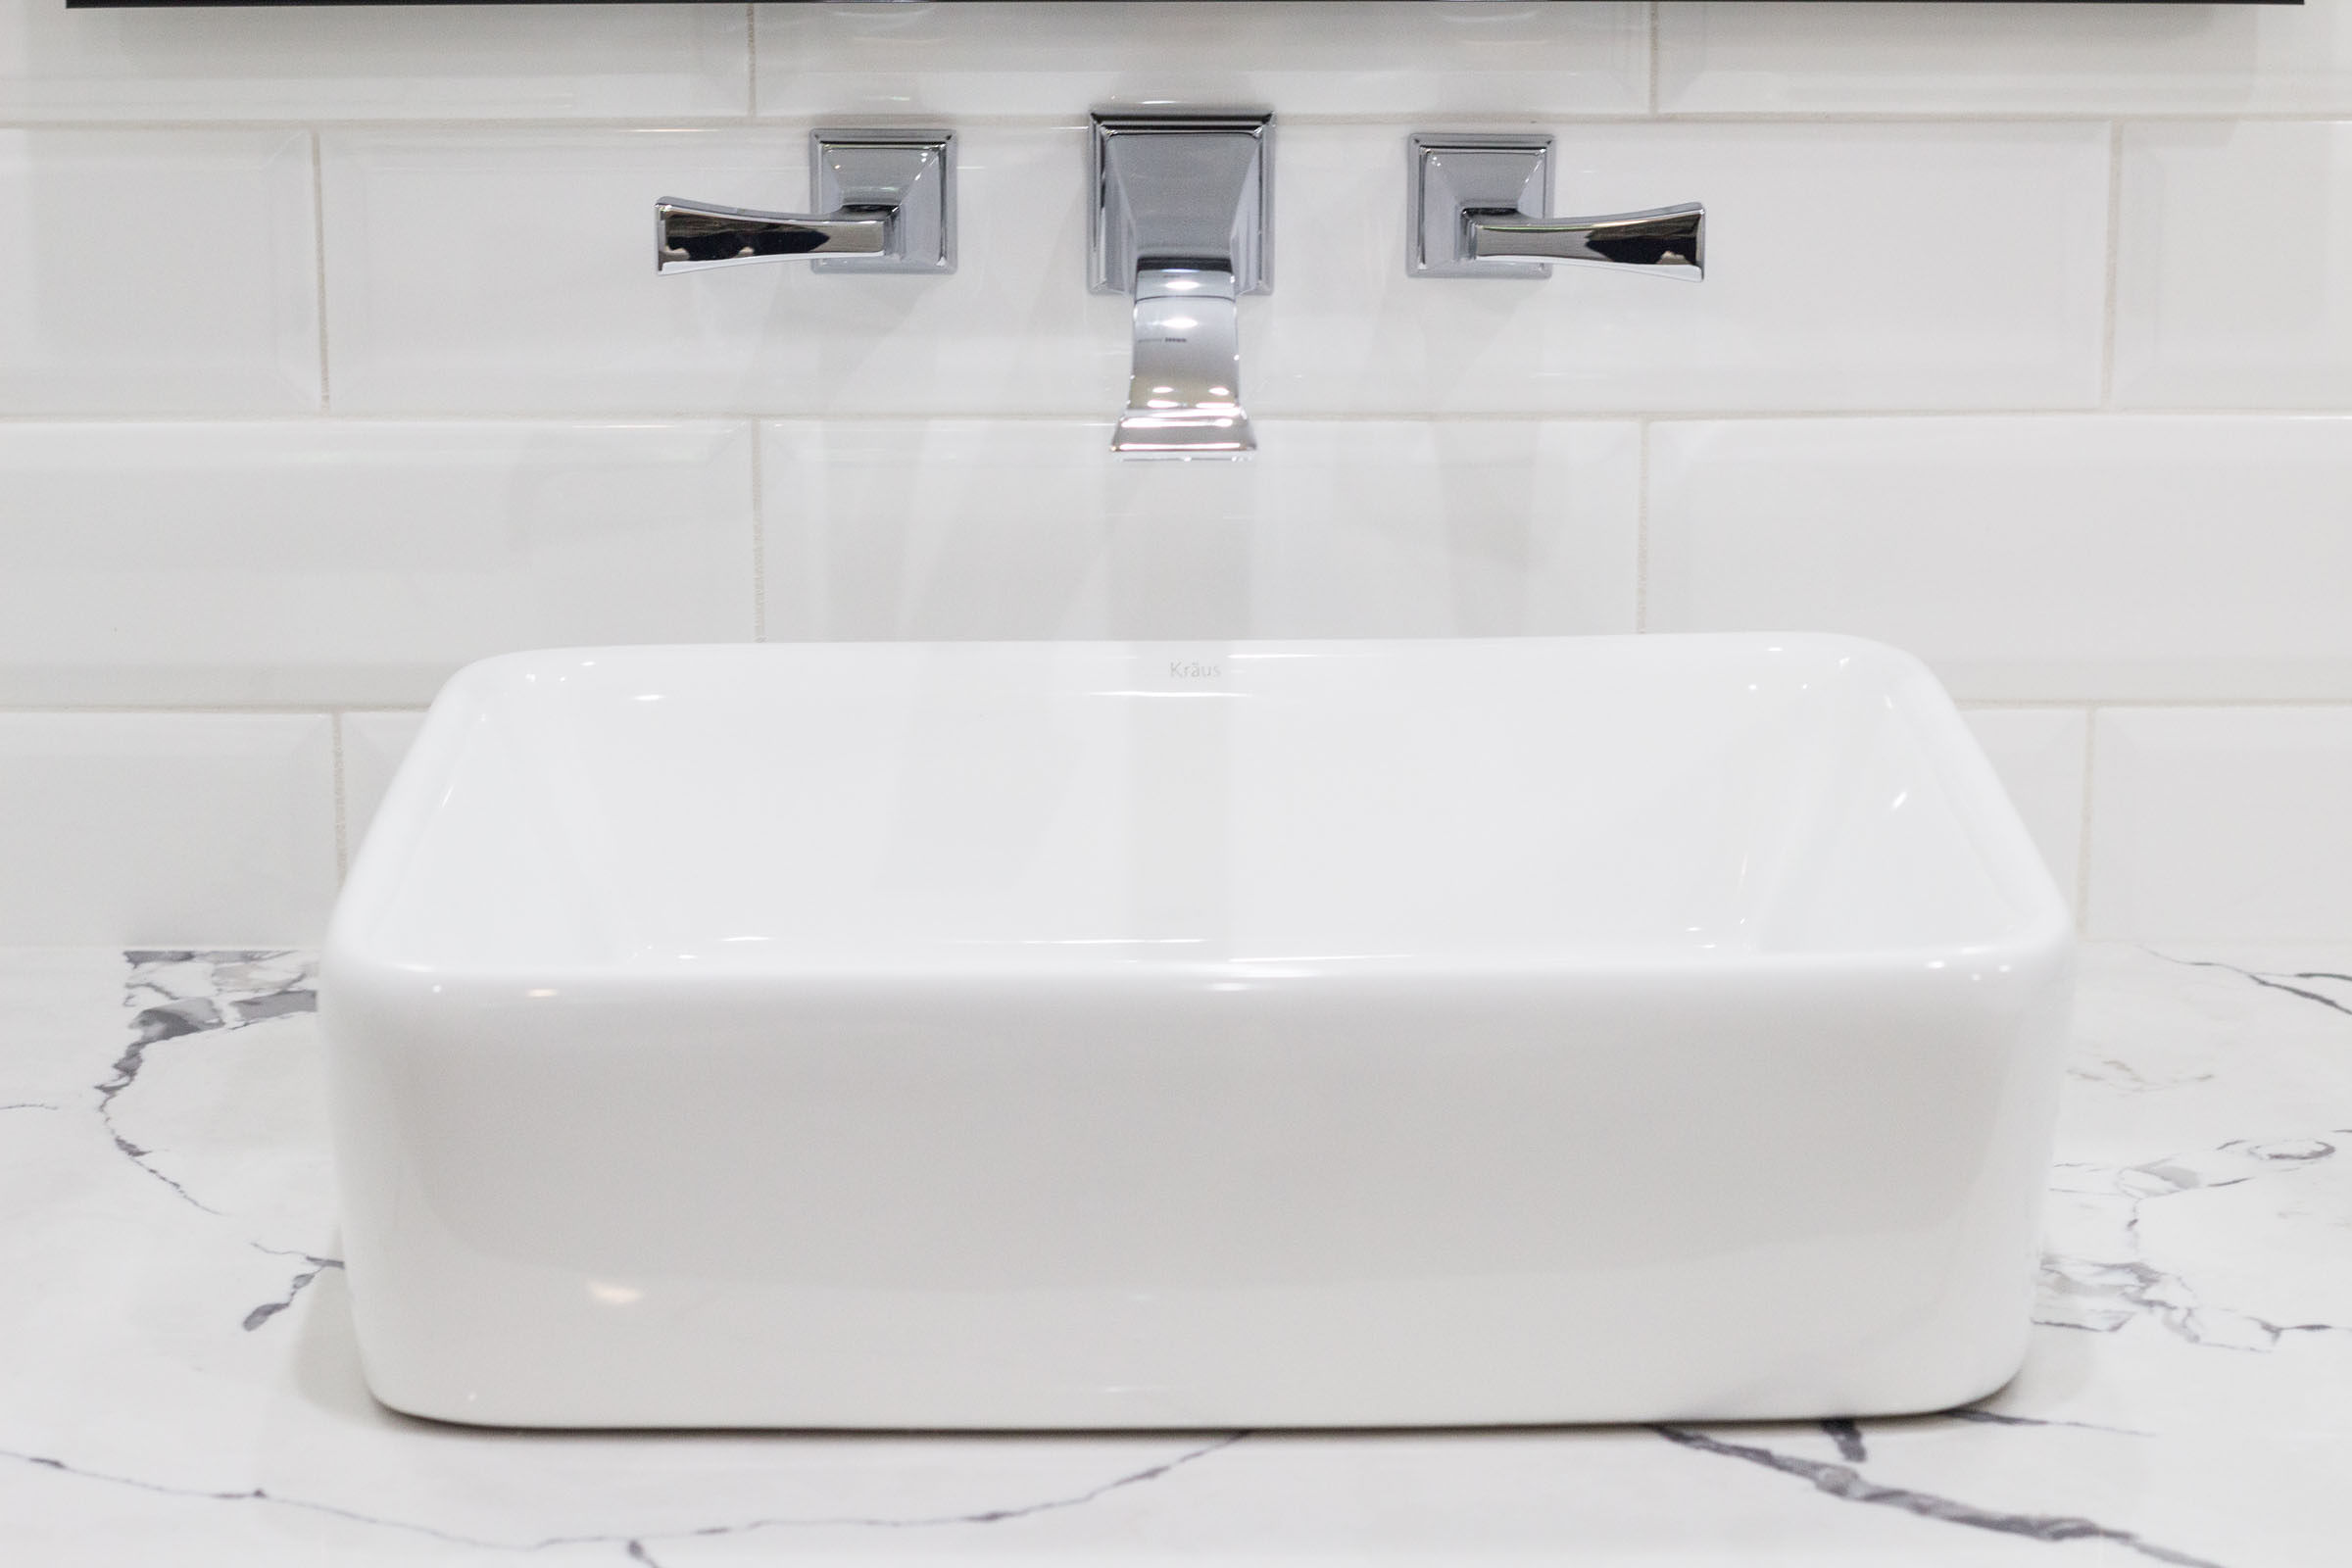 Countertop pedestal bathroom sink with white and grey granite, chrome sink faucet, and white subway tile backsplash